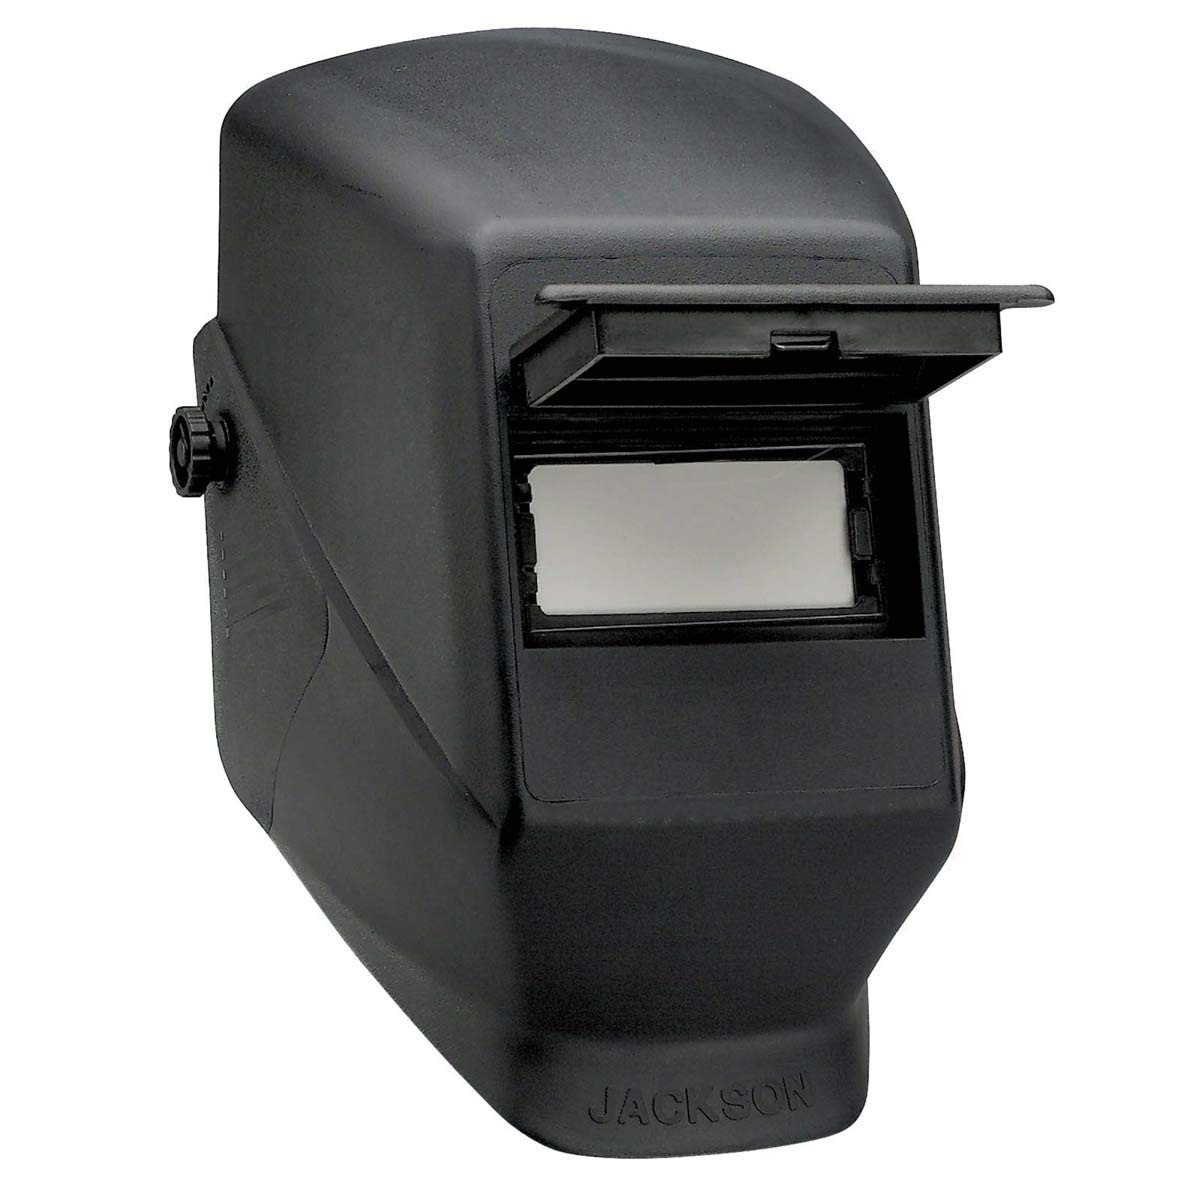 """Kimberly-Clark Professional Jackson Safety HSL 2 Black Thermoplastic Lift Front Welding Helmet With 2"""" X 4 1/4"""" Shade 10 Lens - 4 Each/Case"""